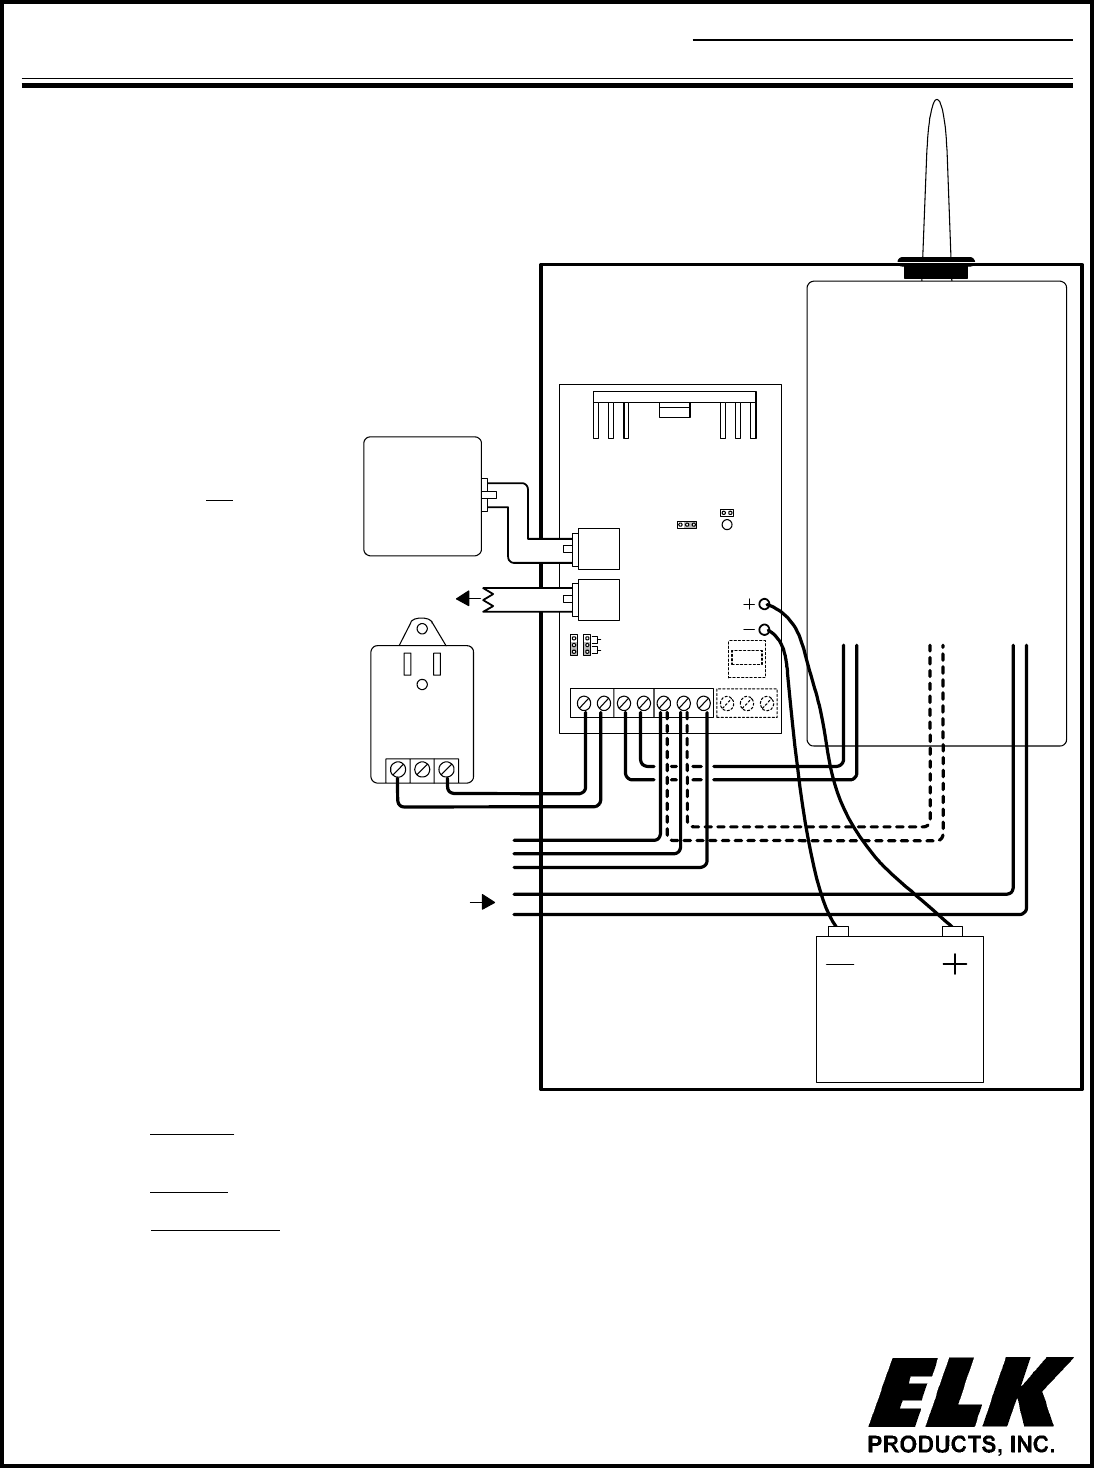 elk products elk 981 home security system user manual Schematics for Surveillance System p o box 100 hildebran nc 28637 usa 828 397 4200 828 397 4415 fax